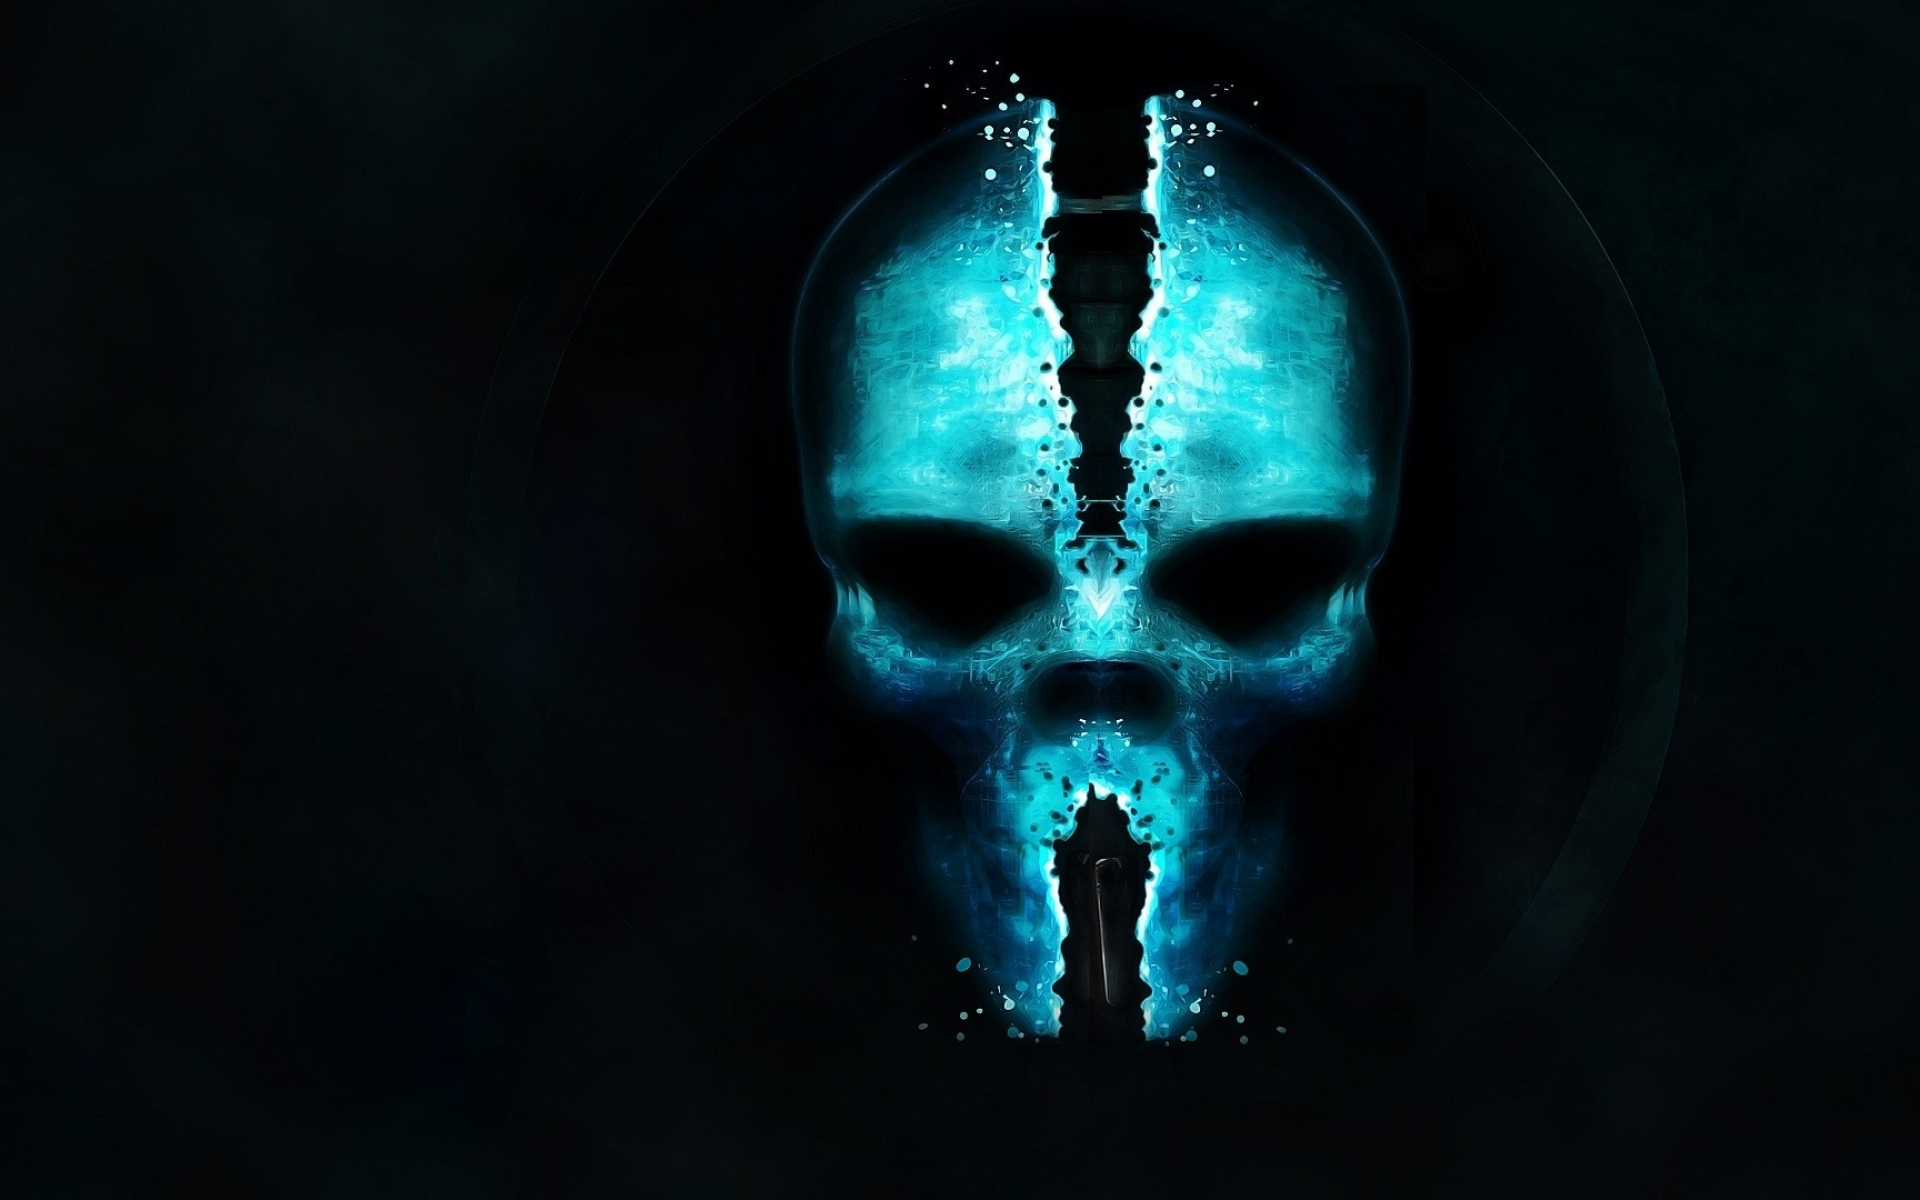 skulls science fiction glow ghost recon games 1920x1080 wallpaper 1920x1200